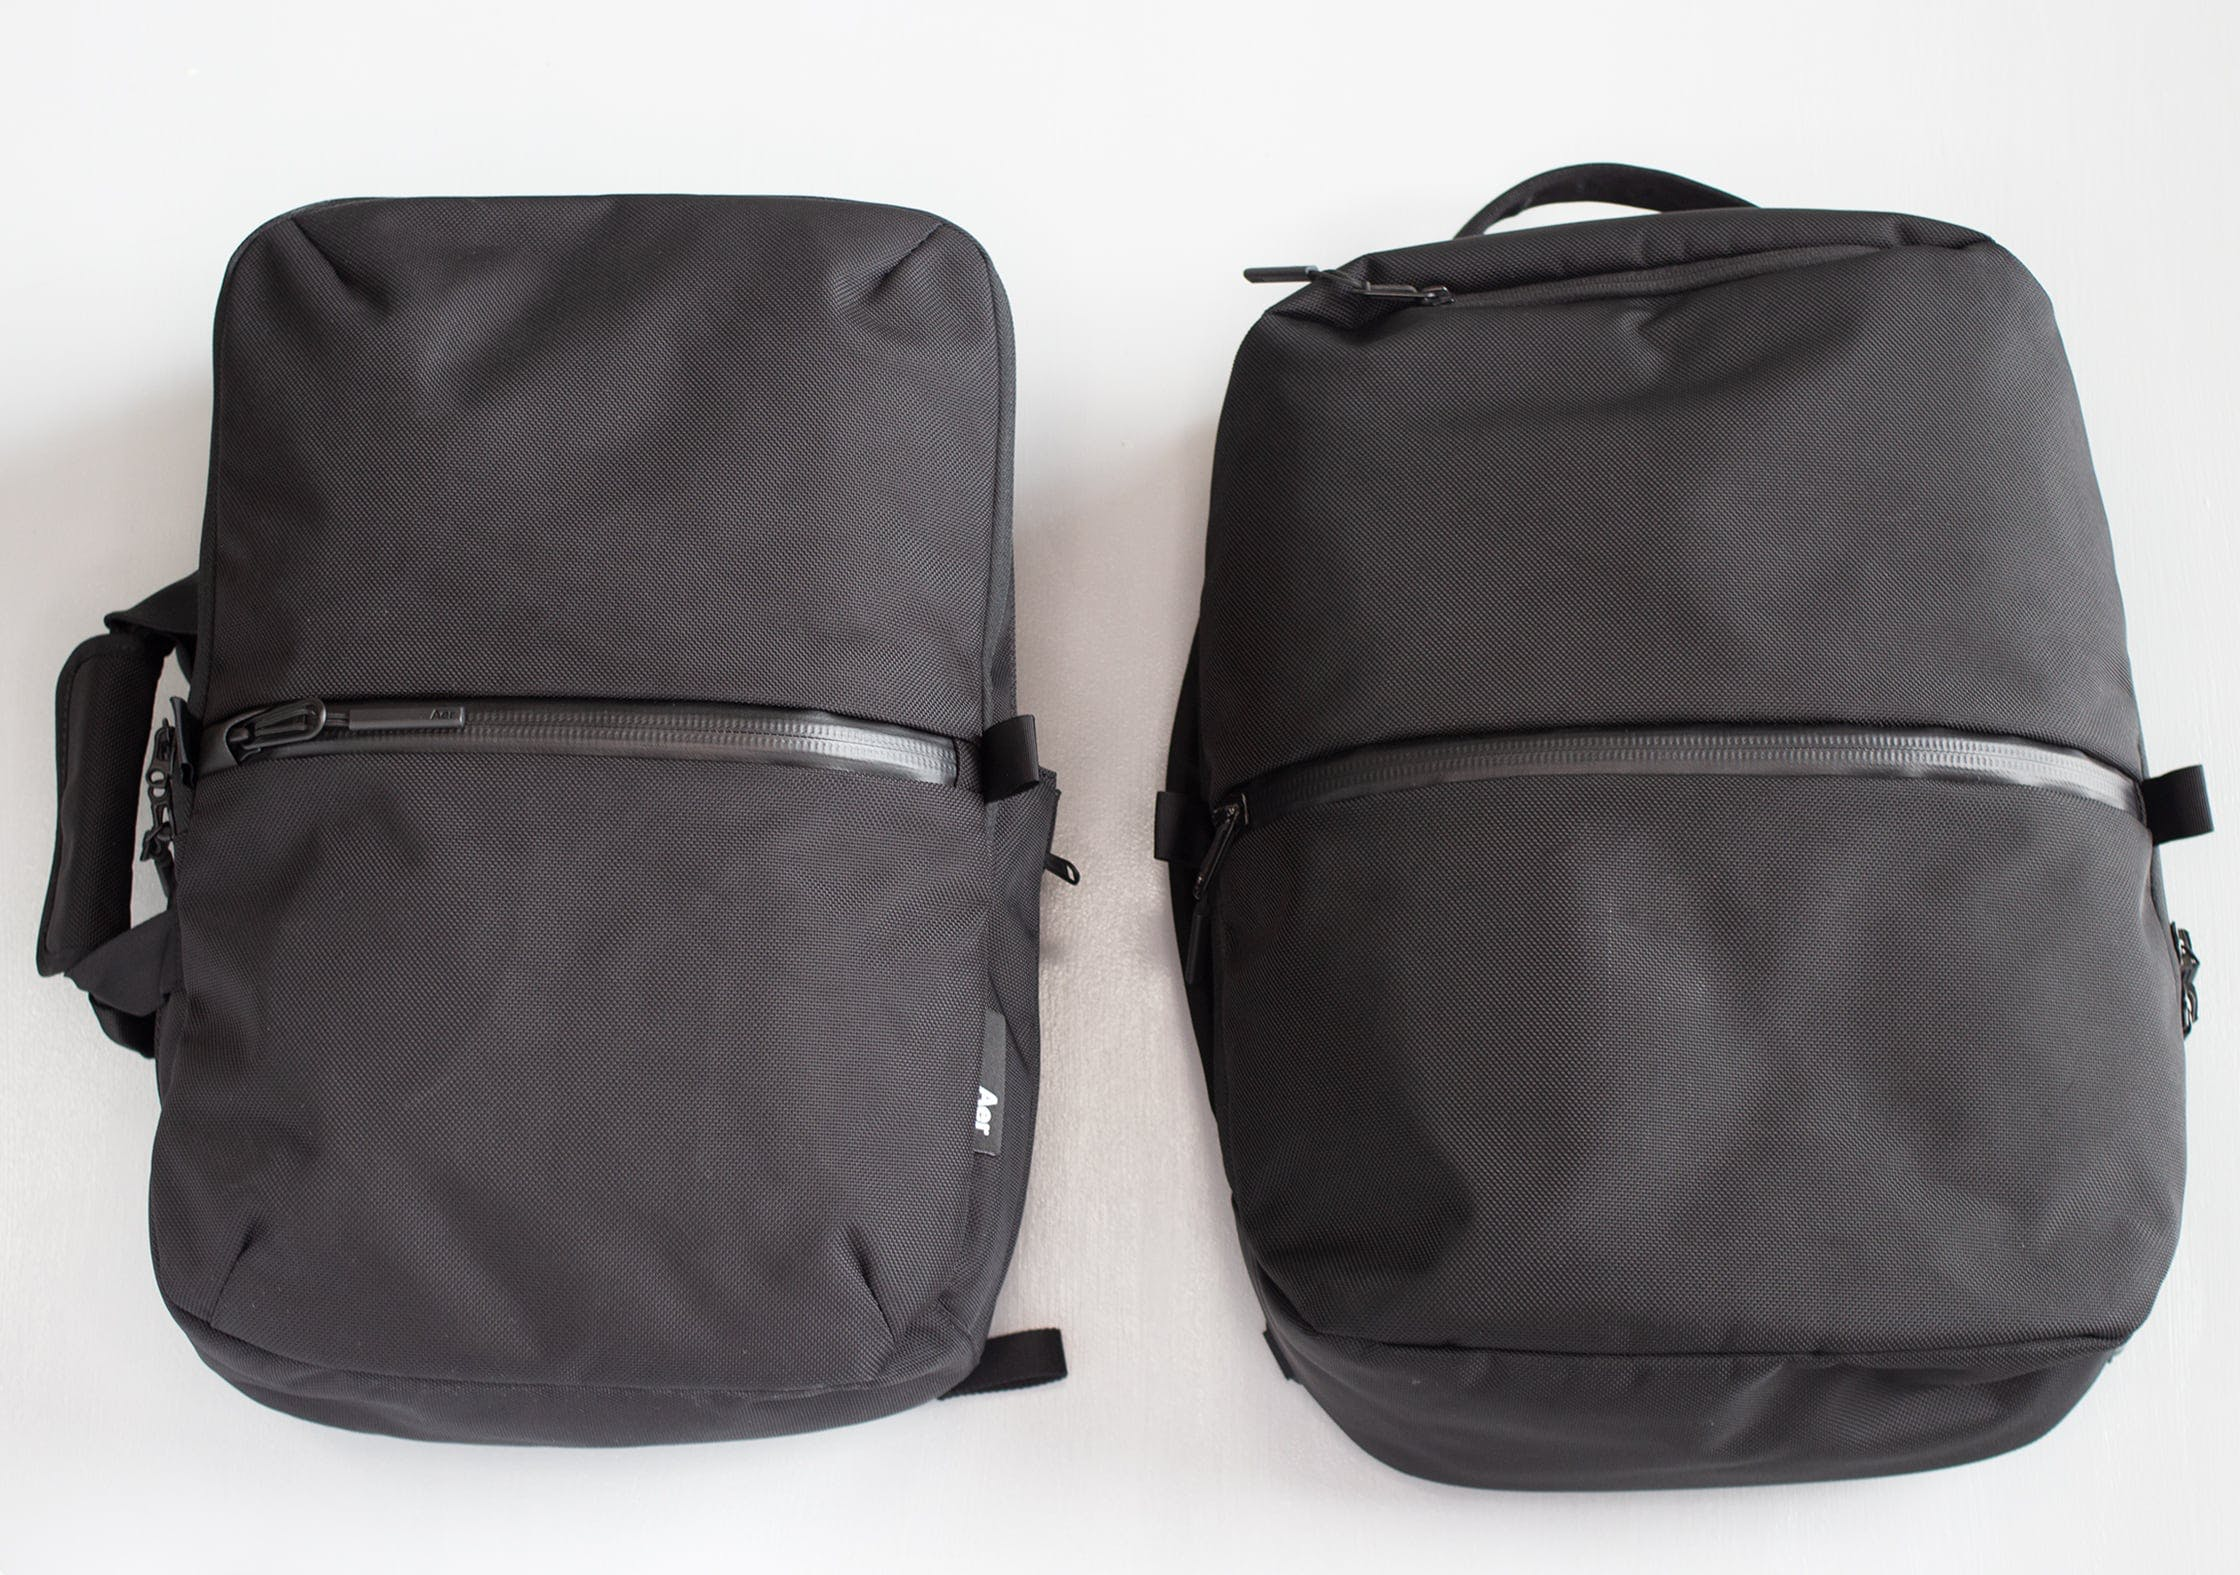 Aer Flight Pack 2 Compared With Flight Pack 1